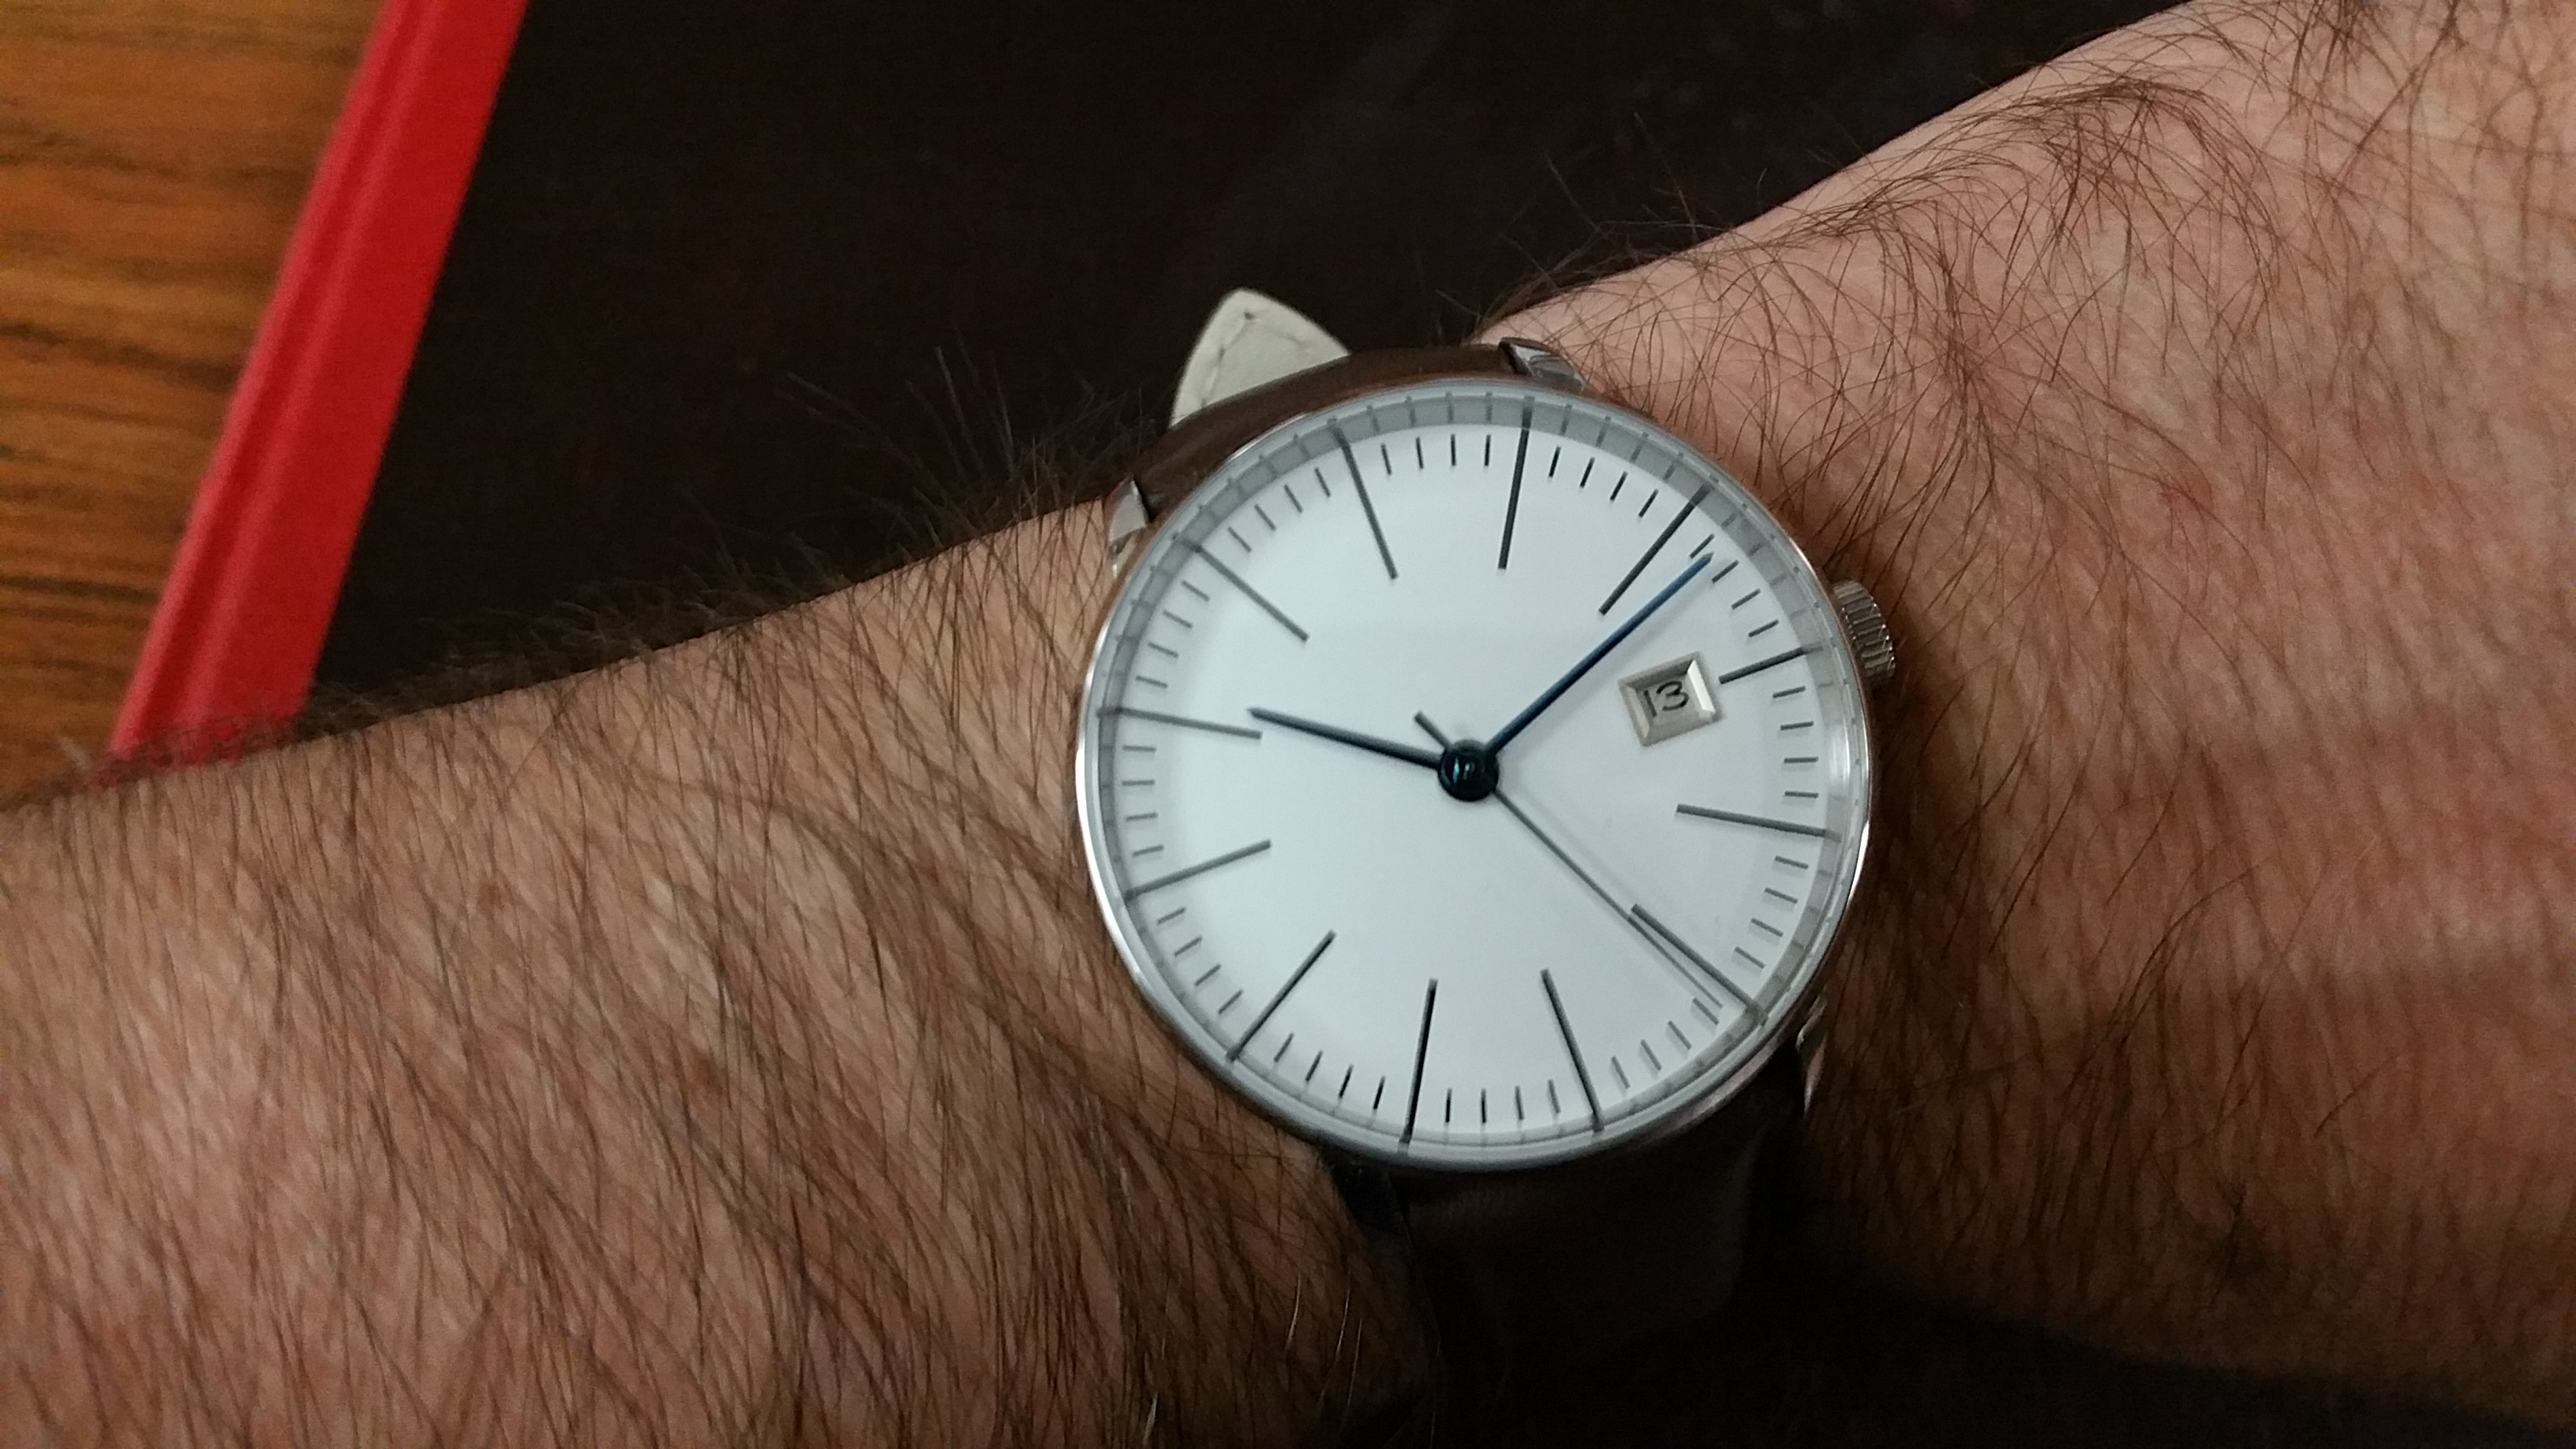 dufa b elegant build with and gentleman show s practical nomadic df refined inspiration bauhaus combined accomplished faces from an watches the taking